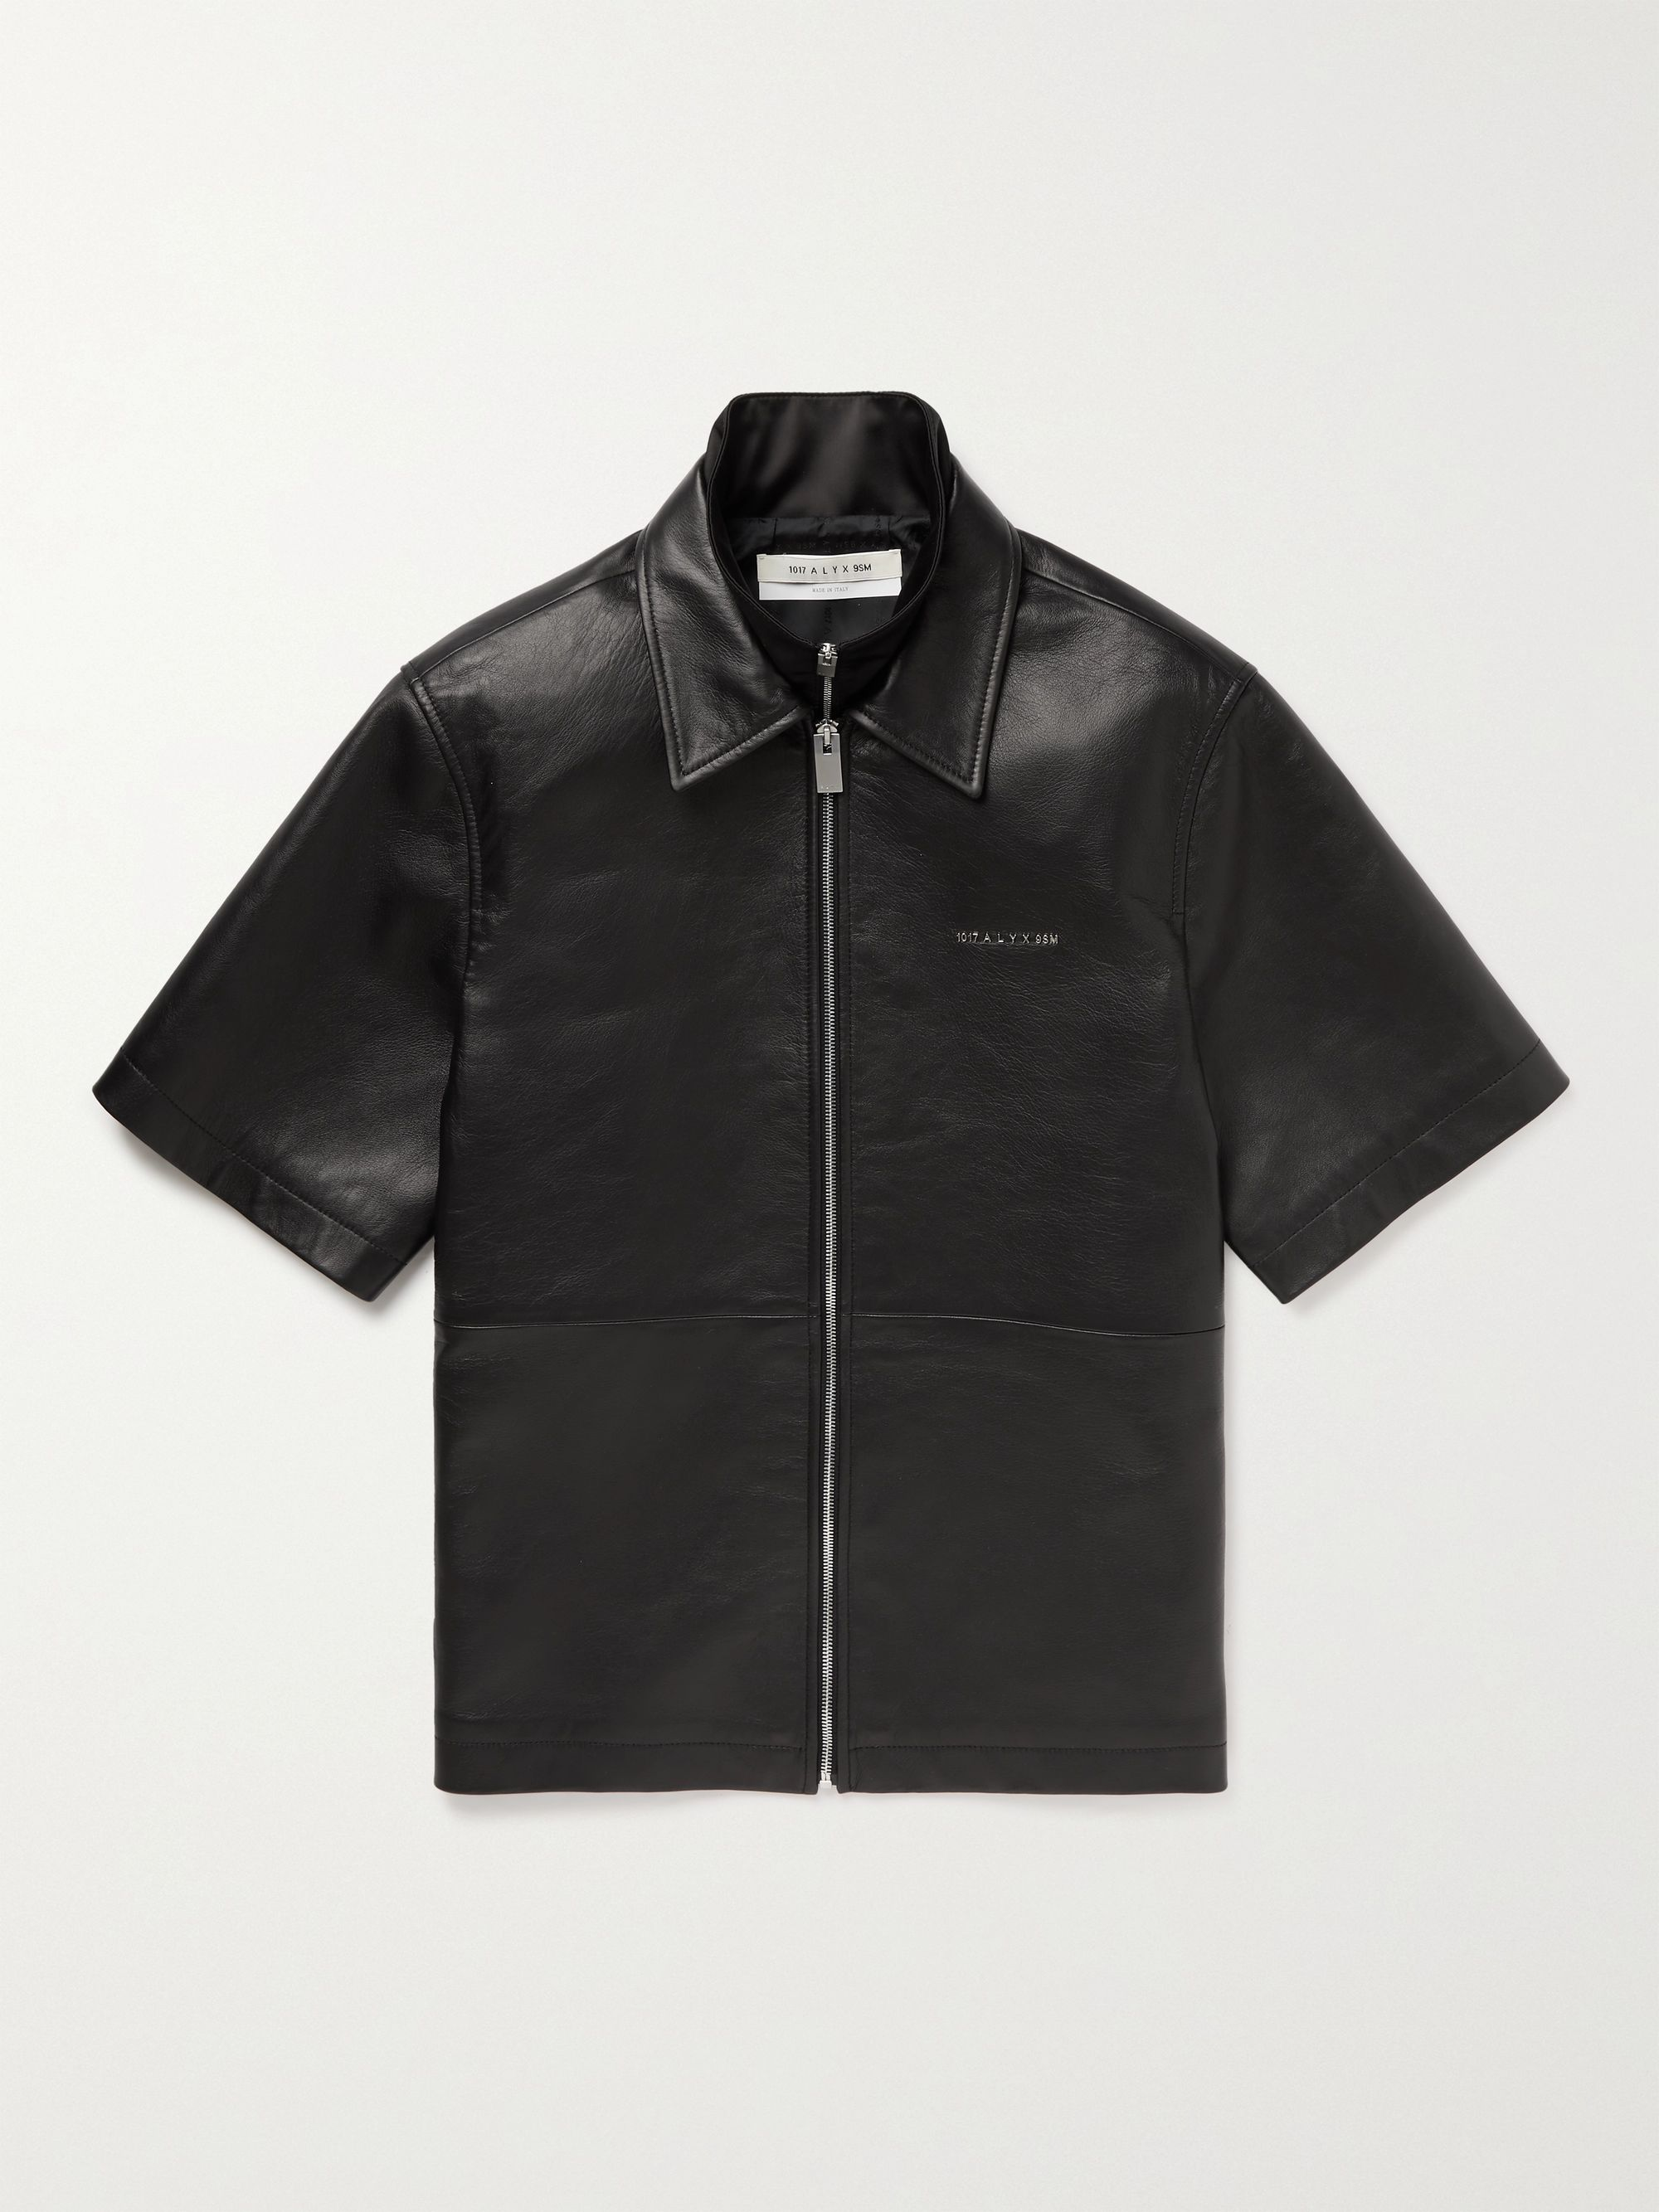 1017 ALYX 9SM Layered Leather and Satin Zip-Up Shirt,Black